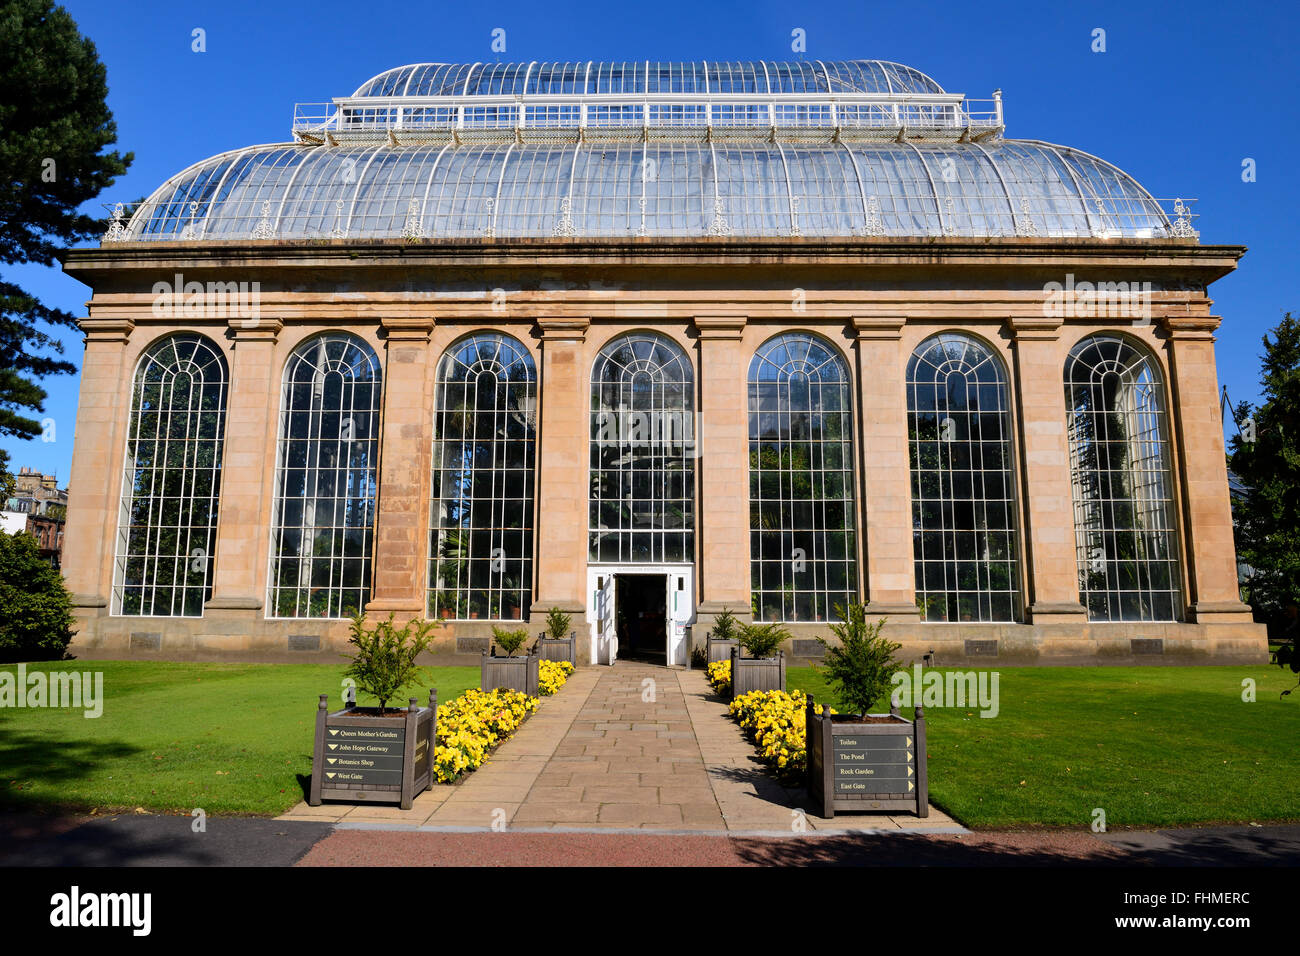 Palm House And Glasshouse, Royal Botanic Garden, Edinburgh, Scotland, UK